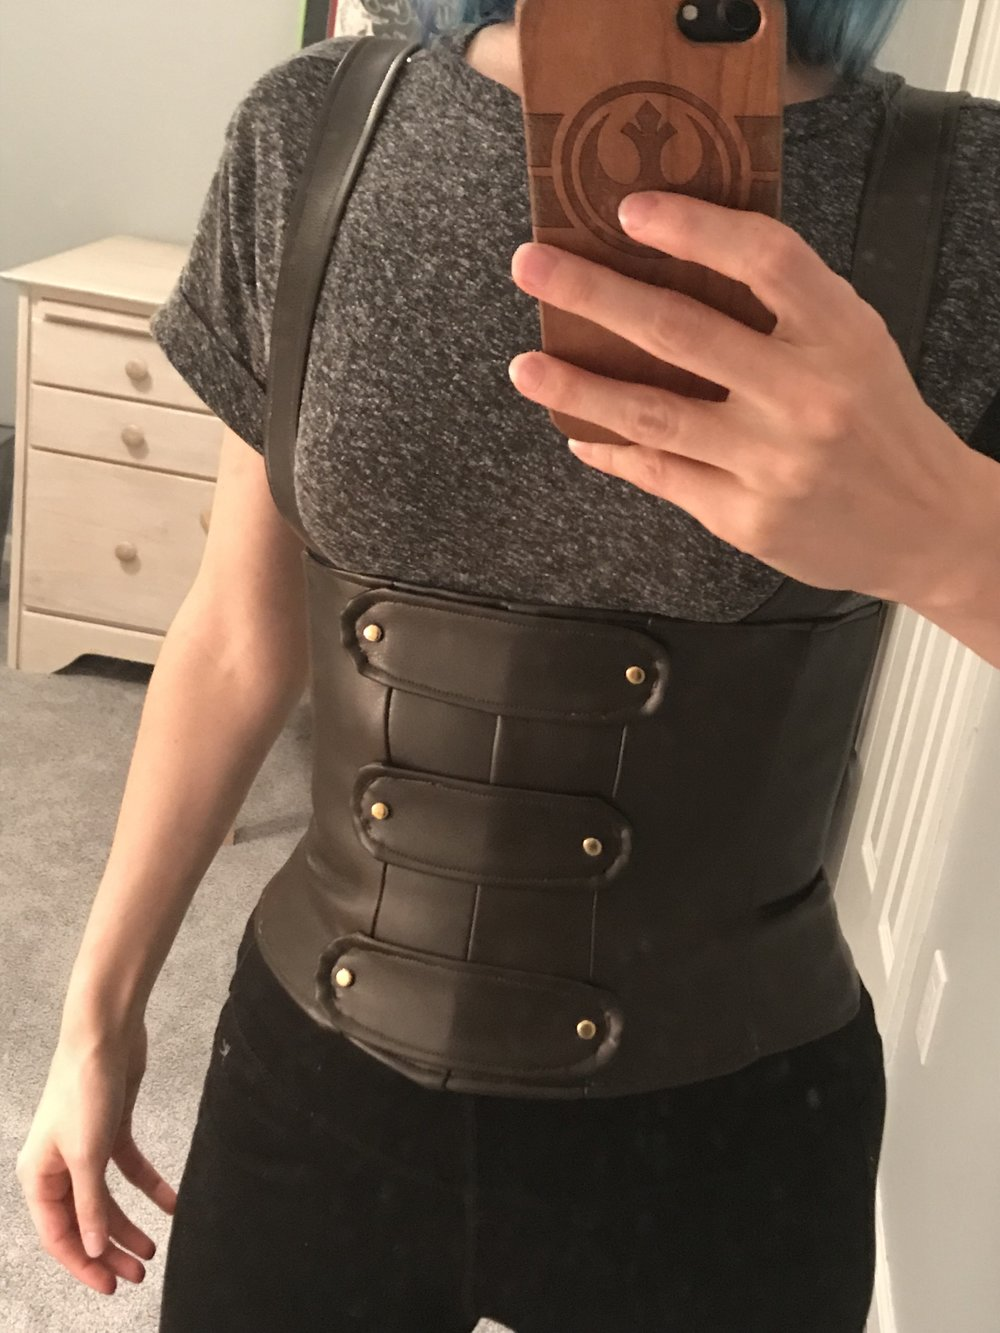 The finished corset! It laces up the back.